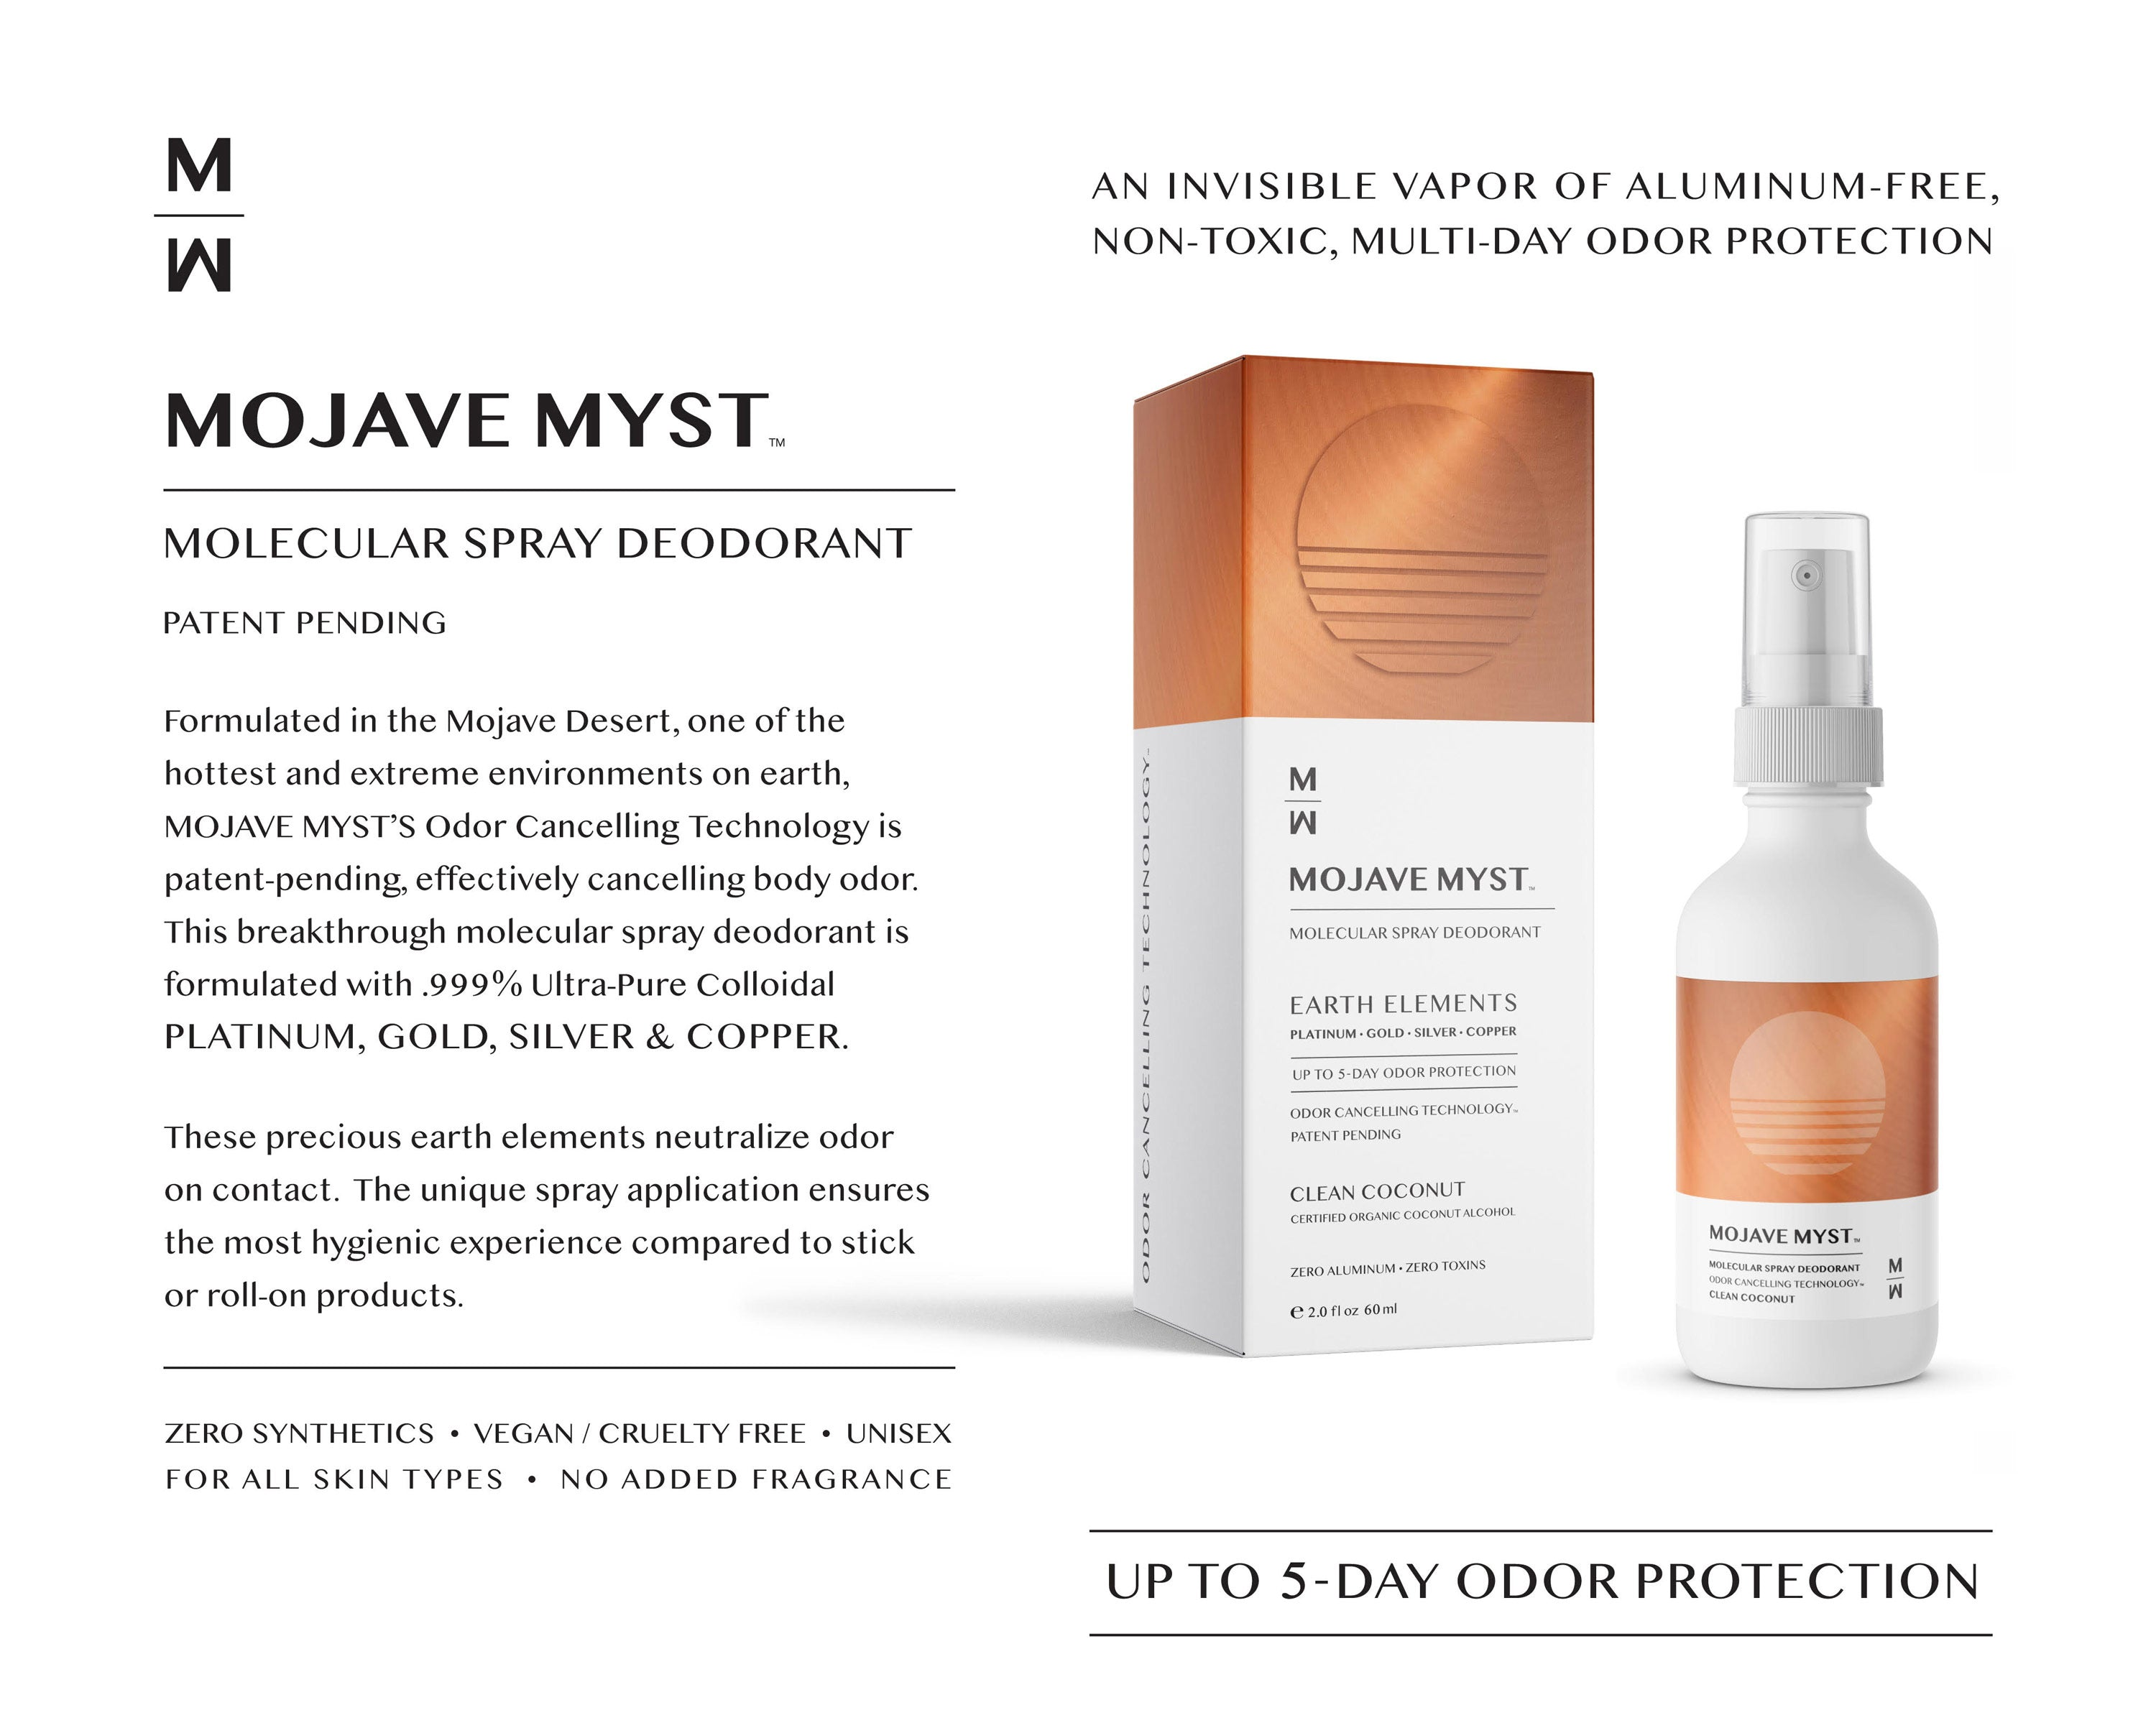 =Mojave Myst. Molecular Spray Deodorant Patent Pending. Formulated in the Mojave Desert, one of the hottest and extreme environments on earth, Mojave Myst's odor cancelling technology is patent-pending, effectively cancelling body odor. This breakthrough molecular spray deodorant is formulated with .999% Ultra-Pure Colloidal Platinum, Gold, Silver and Copper.